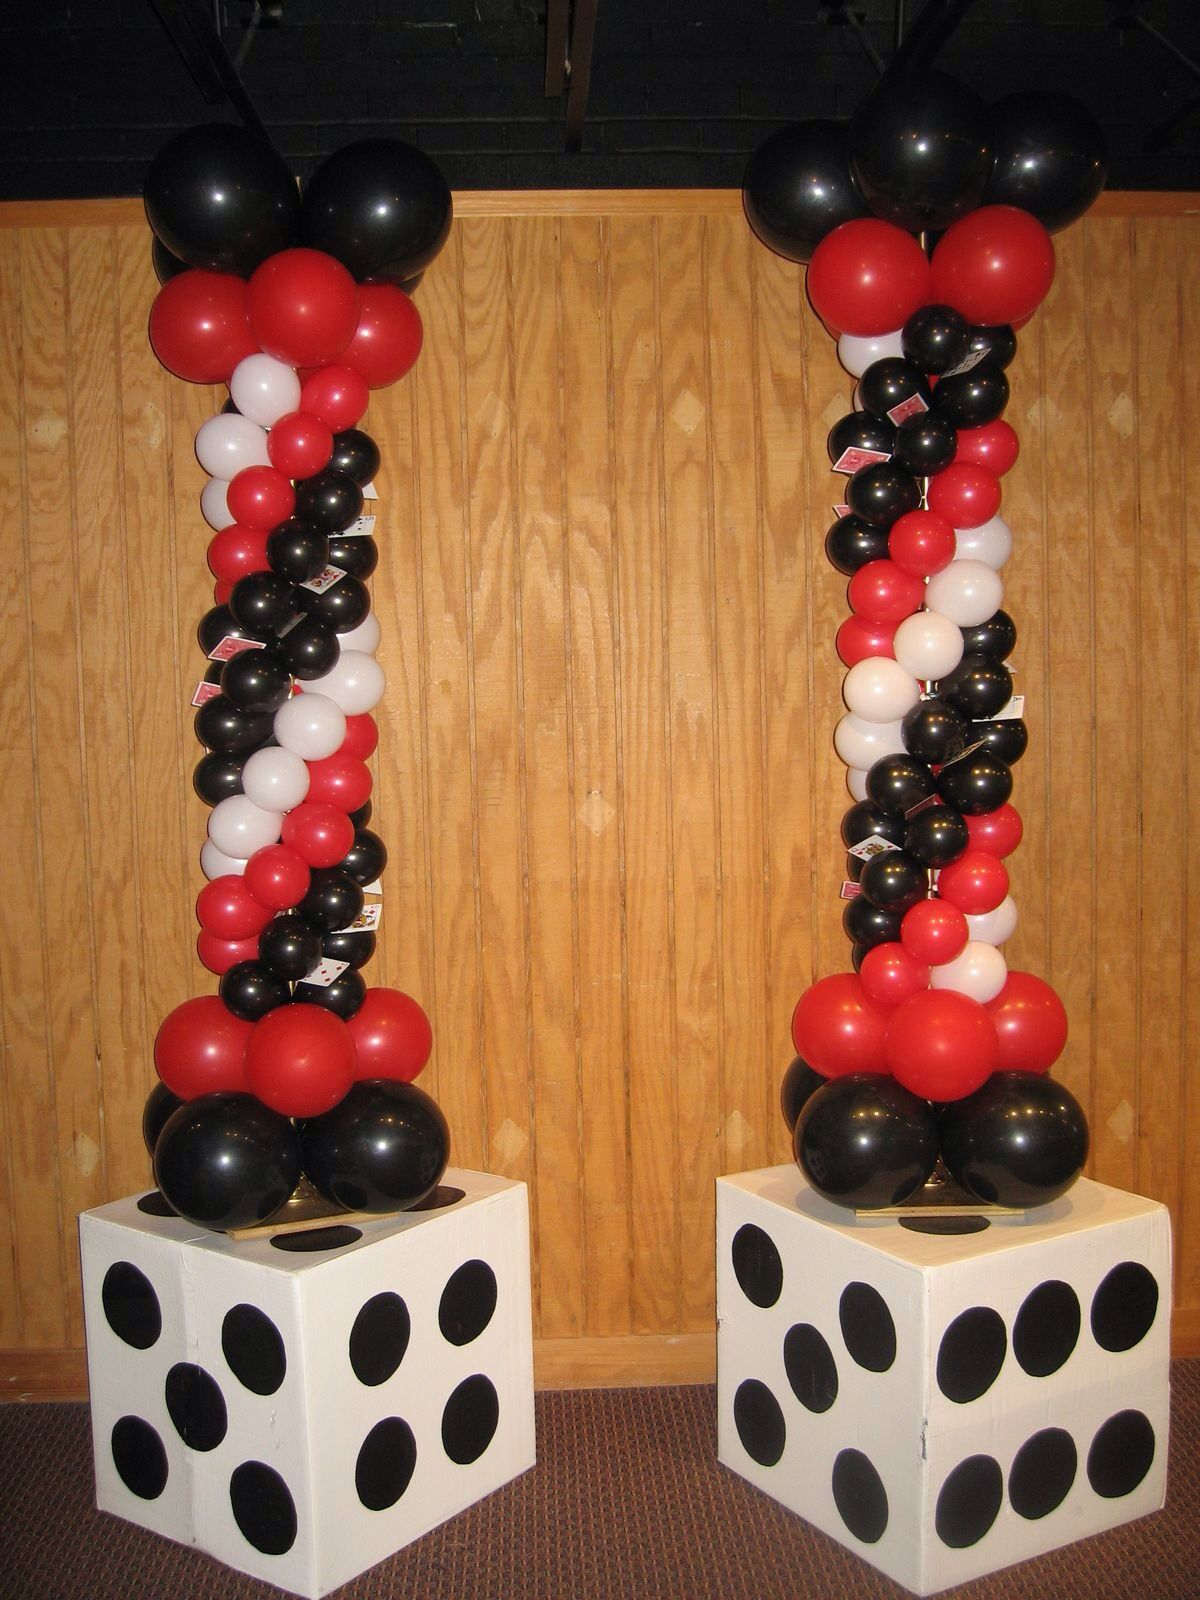 Arreglo con globos estilo casino Events Pinterest Casino night